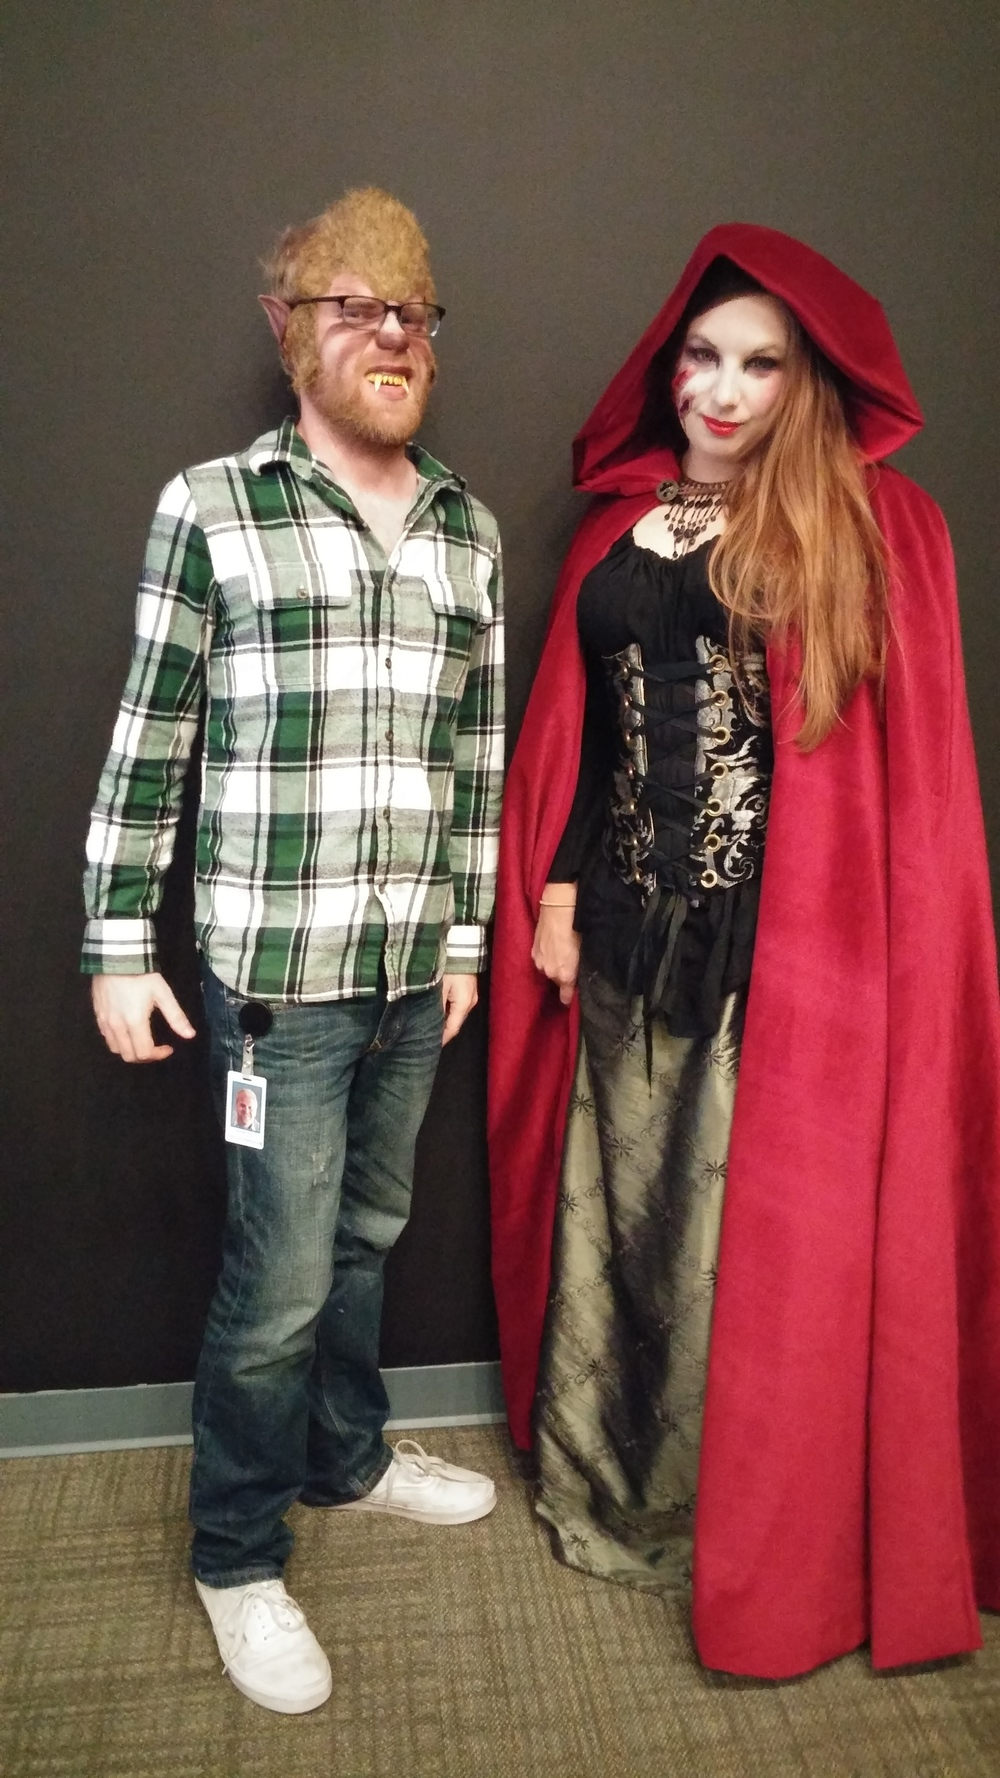 Red Riding Hood and the Wolf!